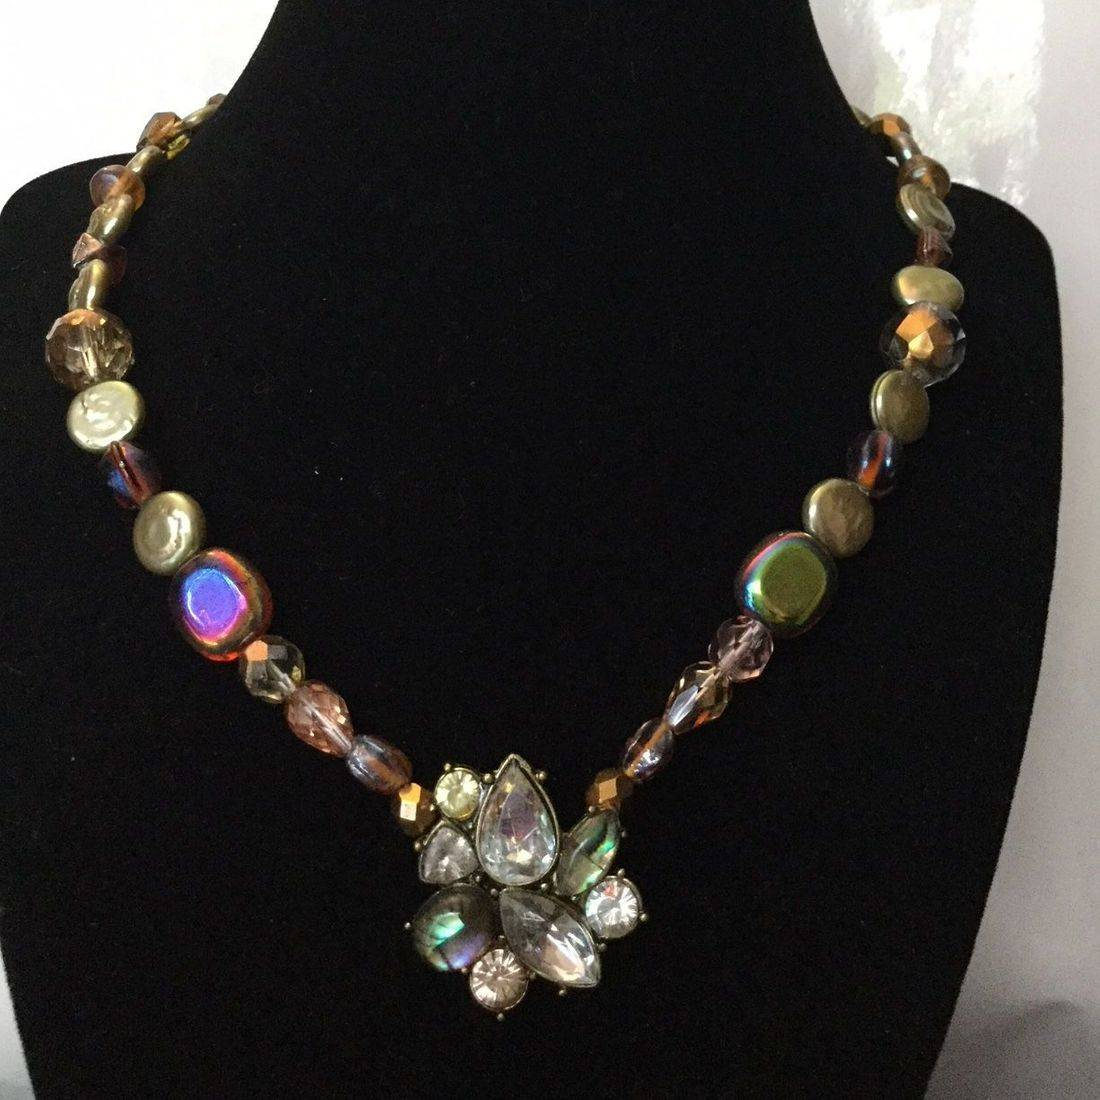 """18"""" Custom Handmade Flat Round 10MM Cultured Pearl, Necklace, Green/Gold, Iridescent, Lampwork Glass Beads, shell pendent accent, Necklace, womens, charity, girls, teens, jewelry"""